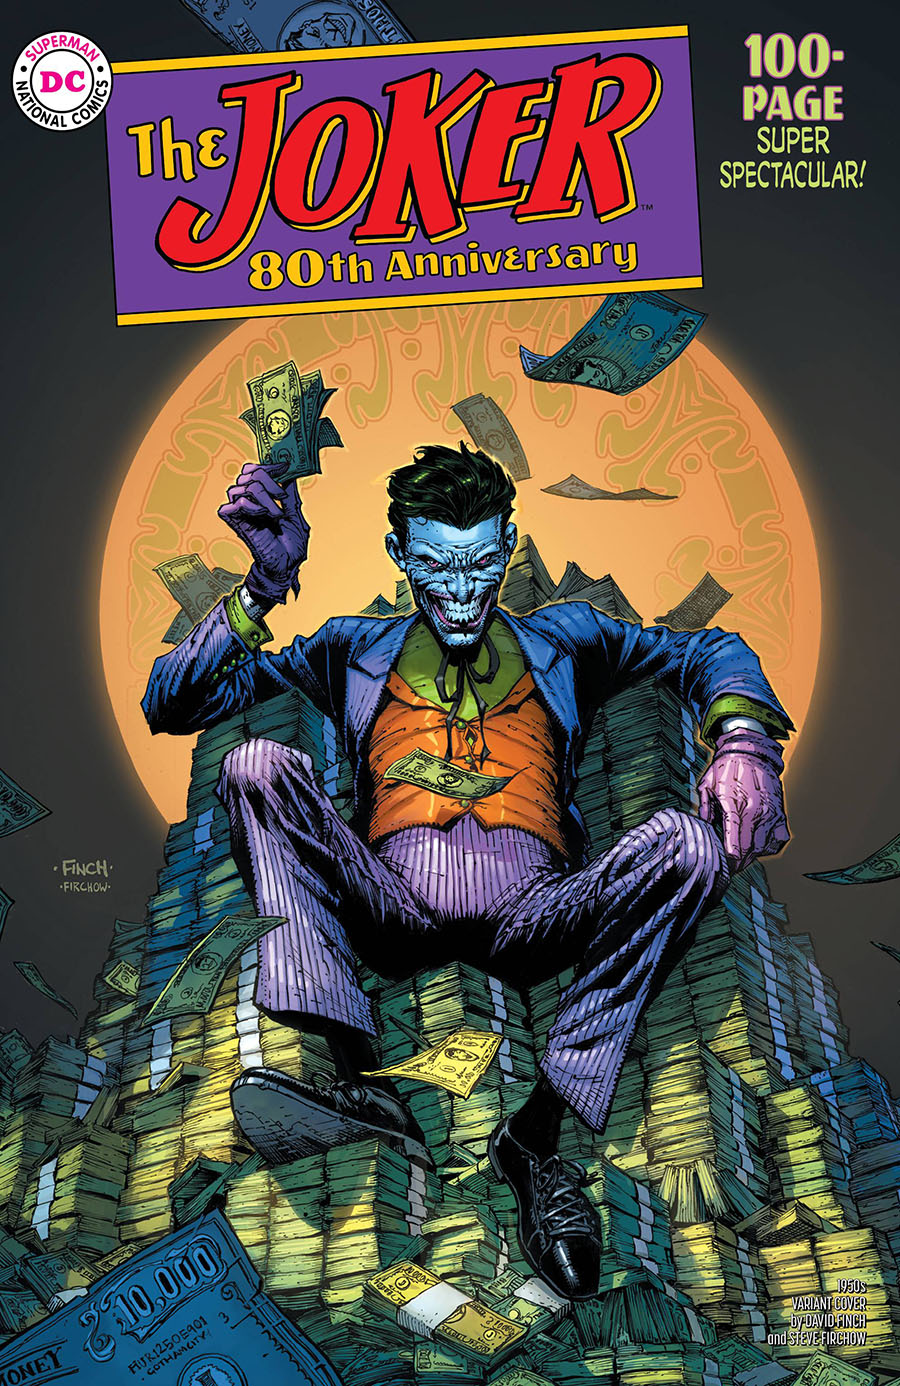 Joker 80th Anniversary 100-Page Super Spectacular #1 Cover C Variant David Finch 1950s Cover